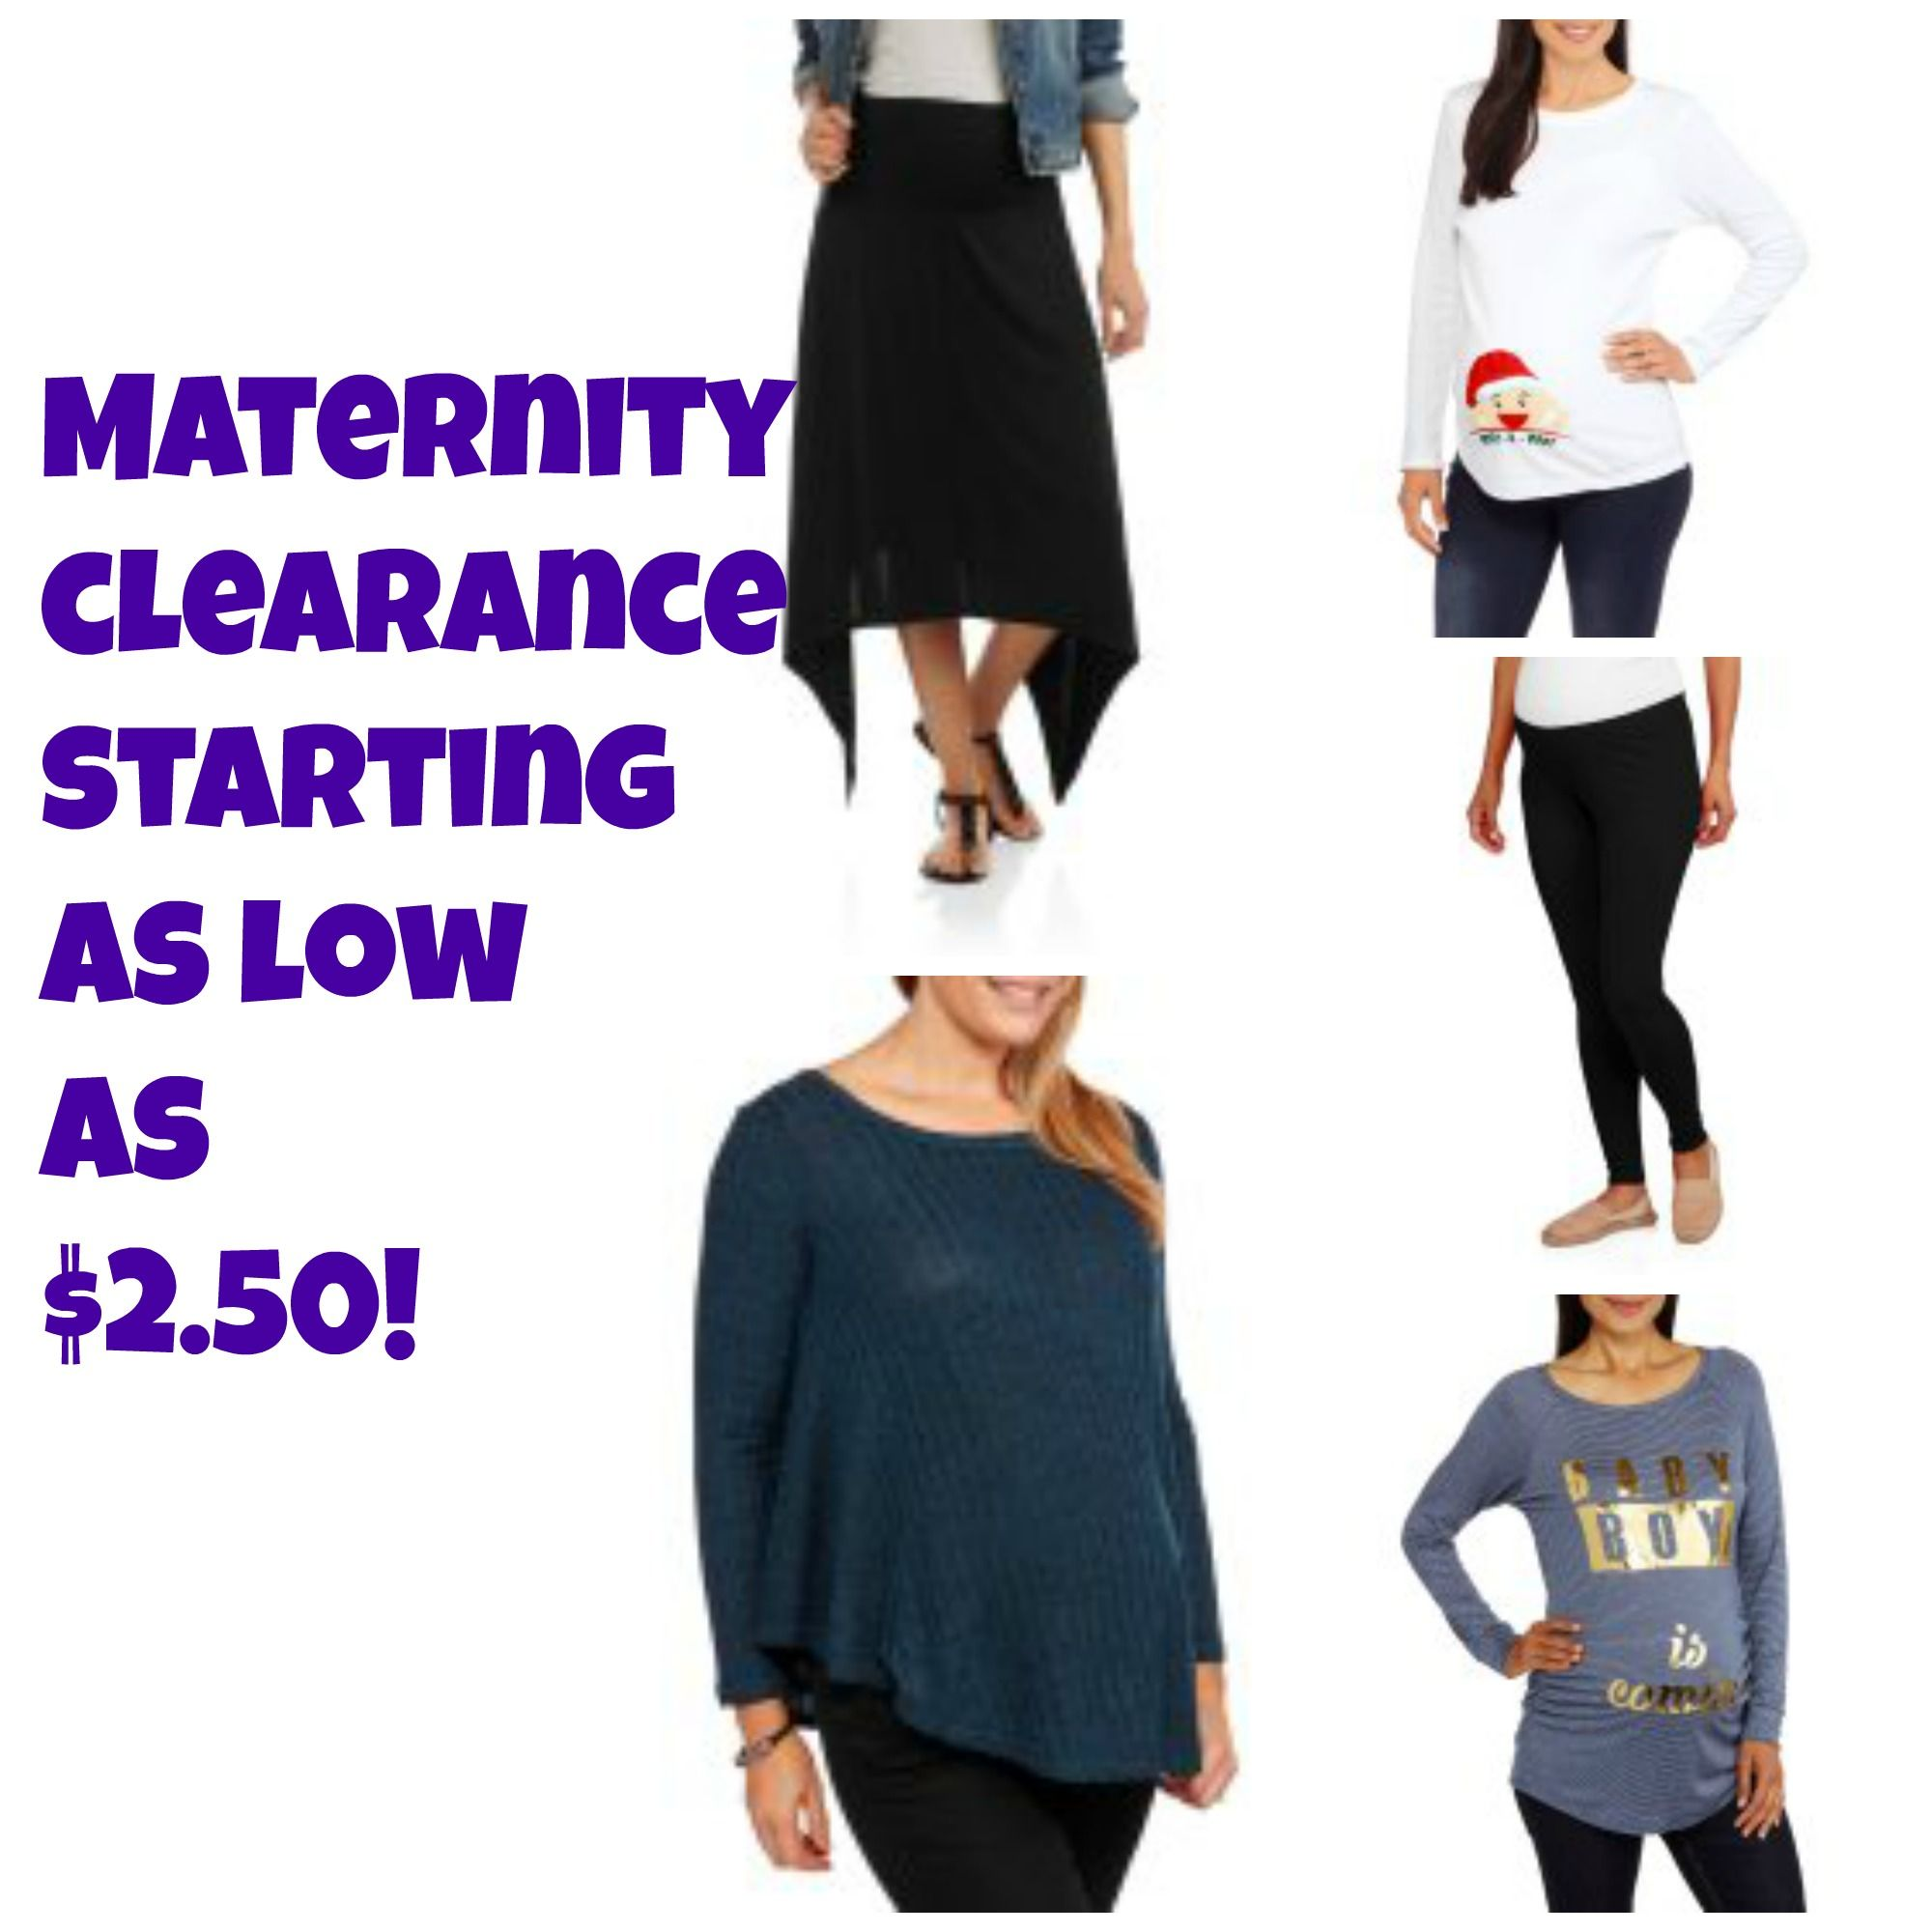 9b79804cb68d8 Maternity Clothes Clearance as low as $2.50! | Clearance Maternity ...